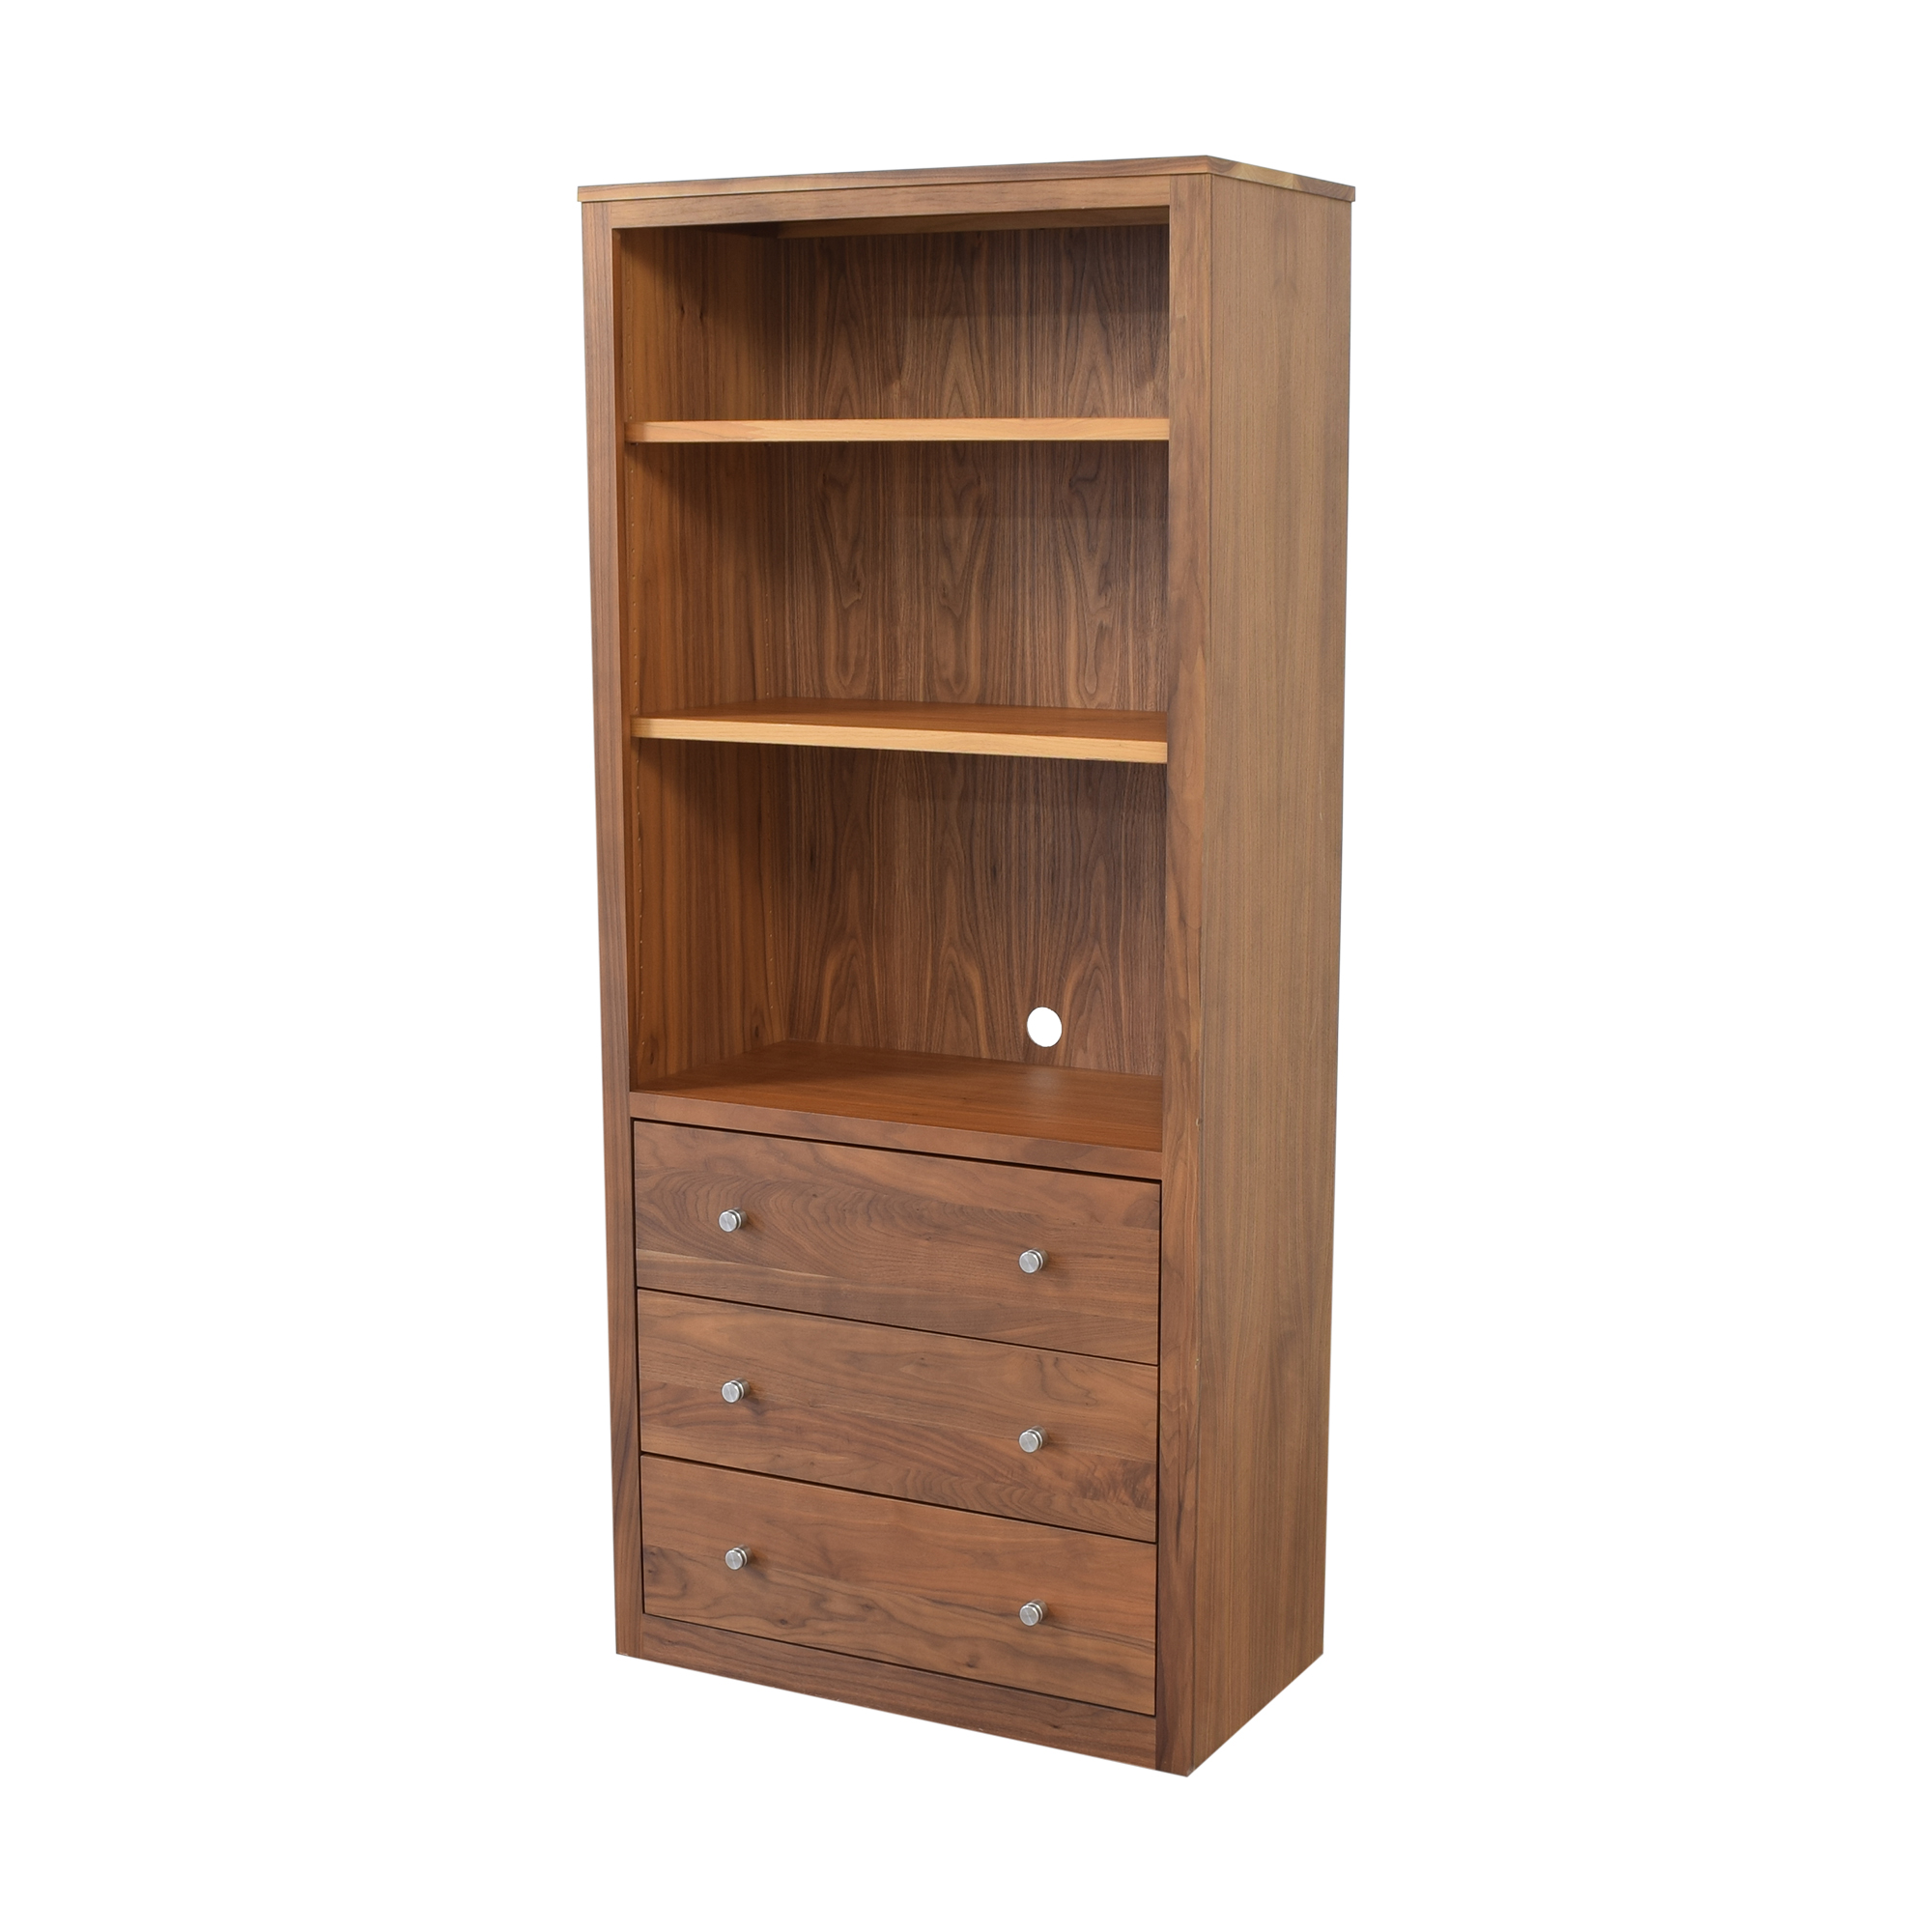 Room & Board Room & Board Woodwind Bookcase with Drawers price